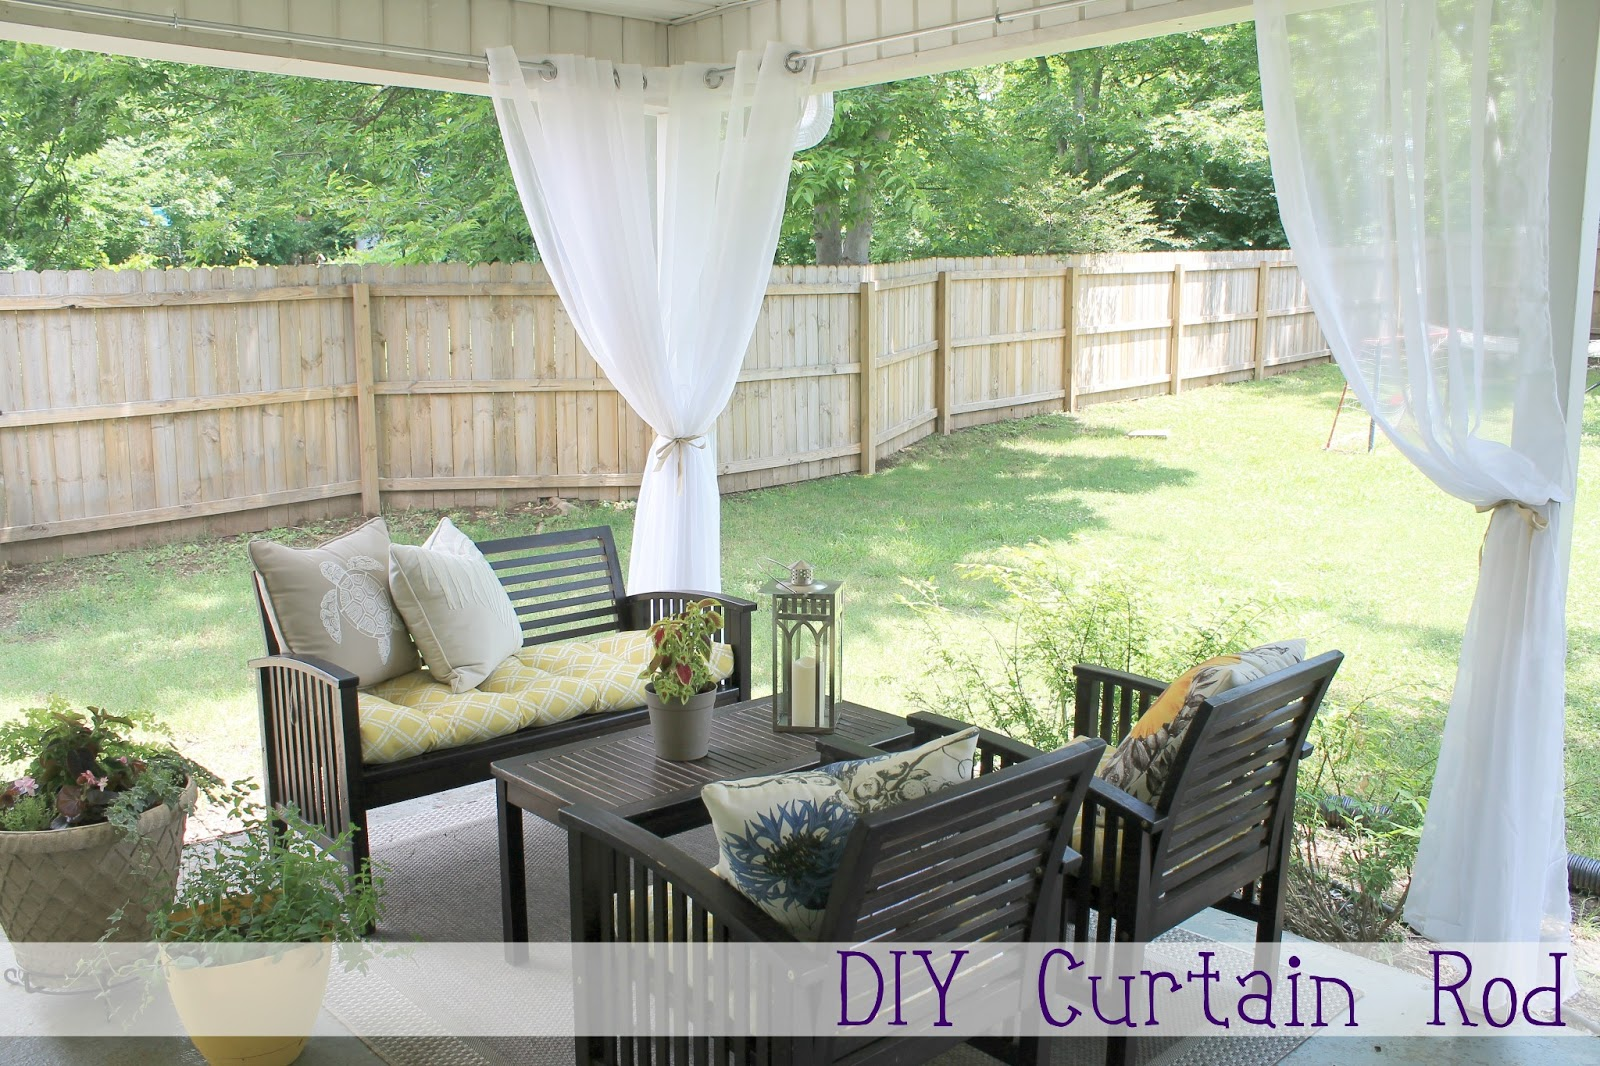 Outdoor Sheer Curtains For Patio - Home Design Ideas and Pictures